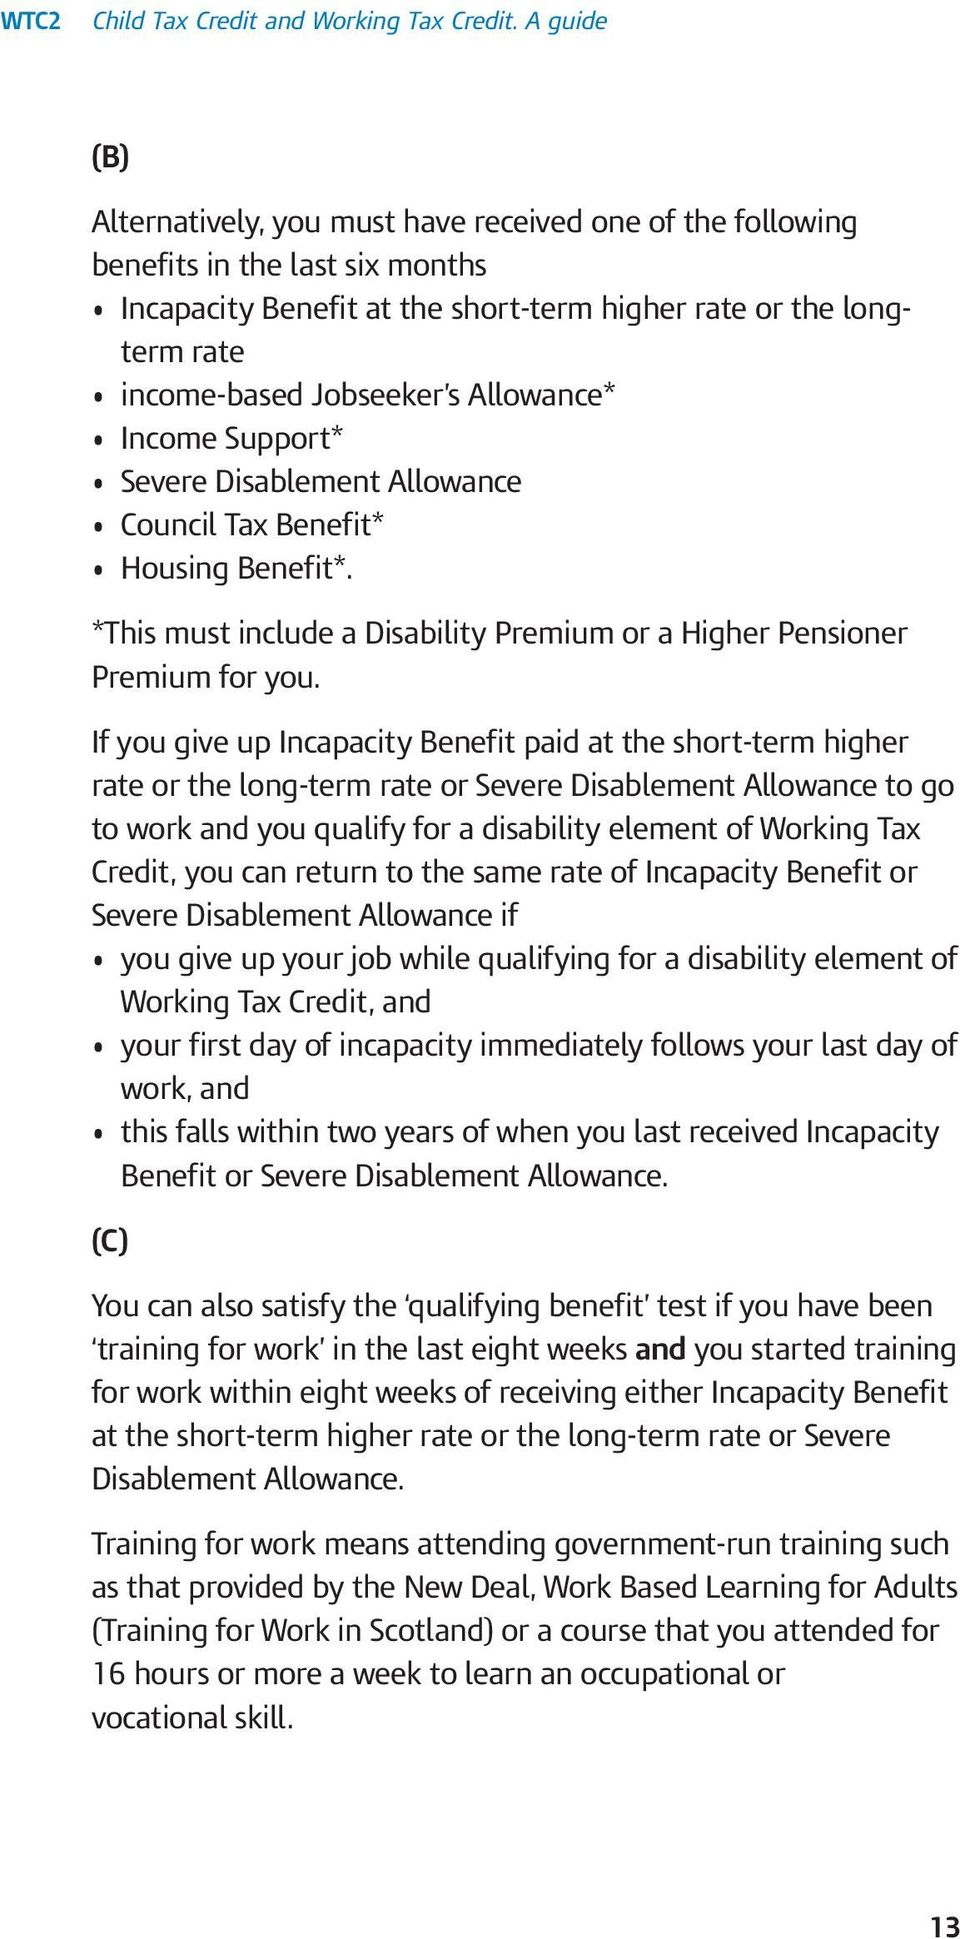 If you give up Incapacity Benefit paid at the short-term higher rate or the long-term rate or Severe Disablement Allowance to go to work and you qualify for a disability element of Working Tax